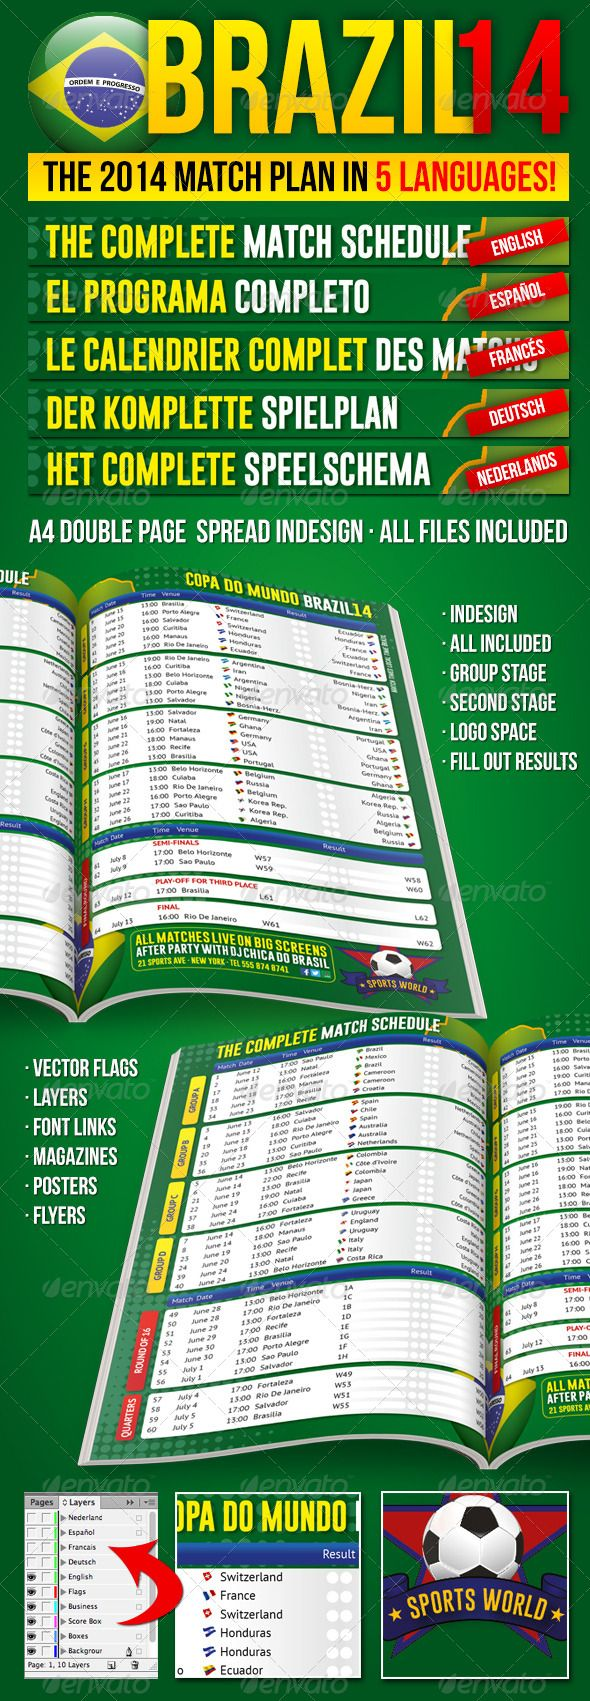 Brazil14 Match Schedule in 5 languages by Montevino Get the FIFA Worldcup Brazil 2014 Soccer Match Plan, now in 5 languages prepared for you in an InDesign document. With one single